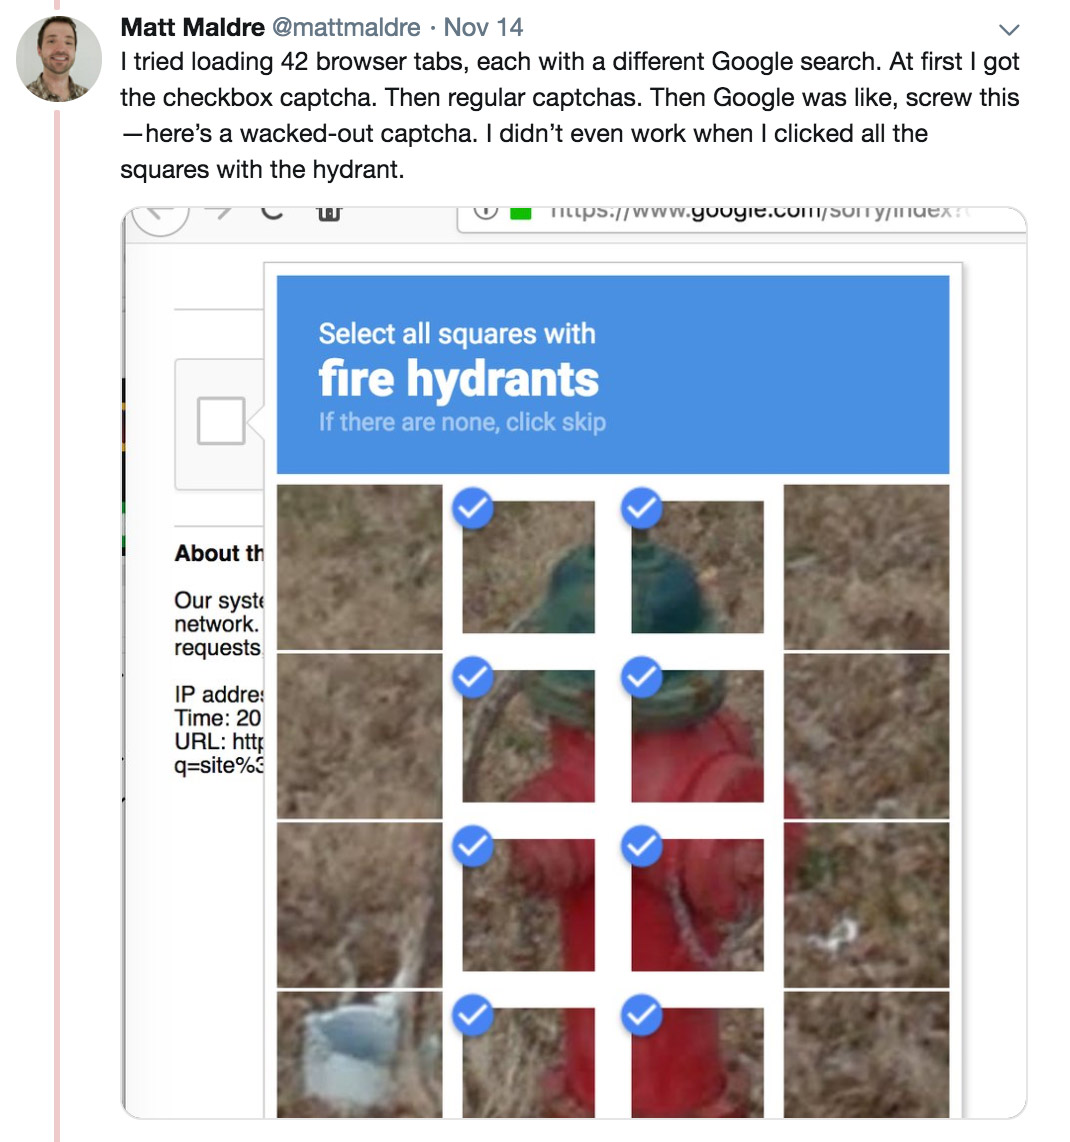 I tried loading 42 browser tabs, each with a different Google search. At first I got the checkbox captcha. Then regular captchas. Then Google was like, screw this—here's a wacked-out captcha. I didn't even work when I clicked all the squares with the hydrant.